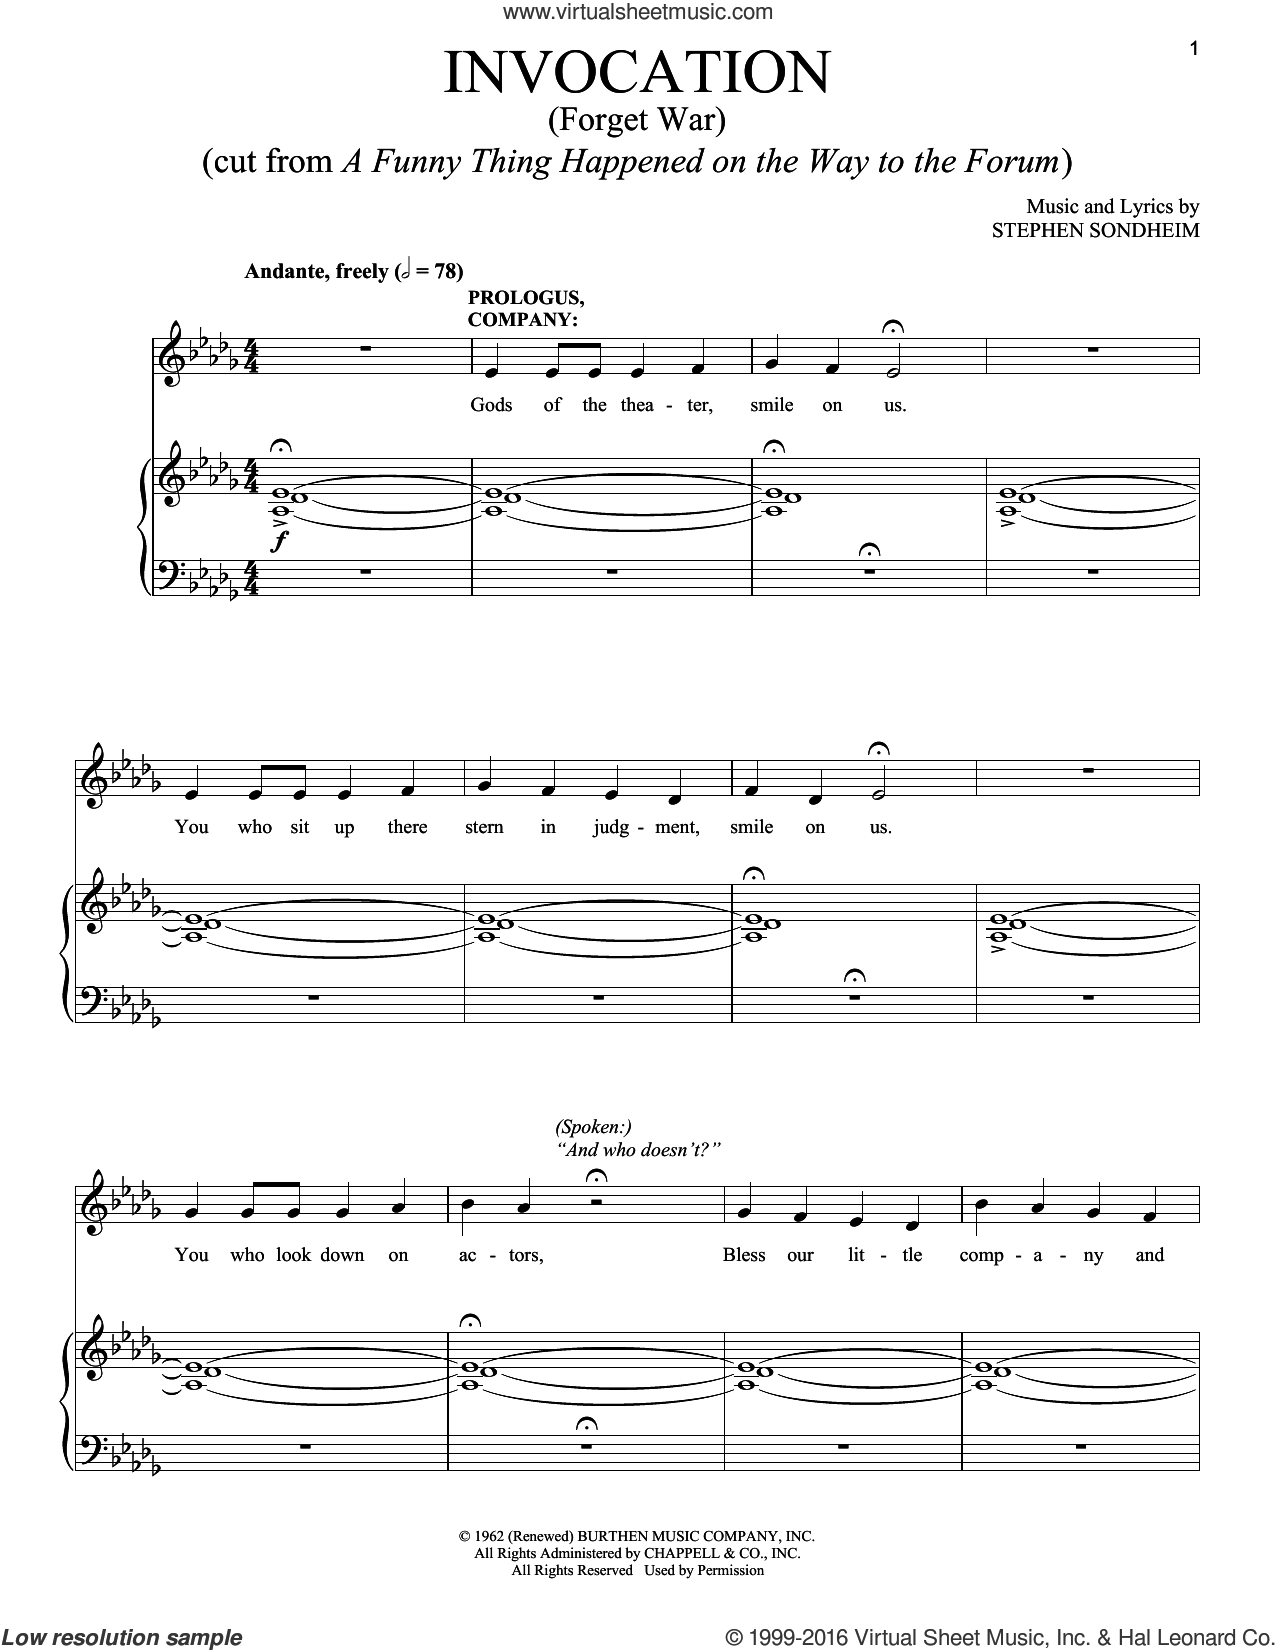 Invocation (Forget War) sheet music for voice and piano by Stephen Sondheim. Score Image Preview.